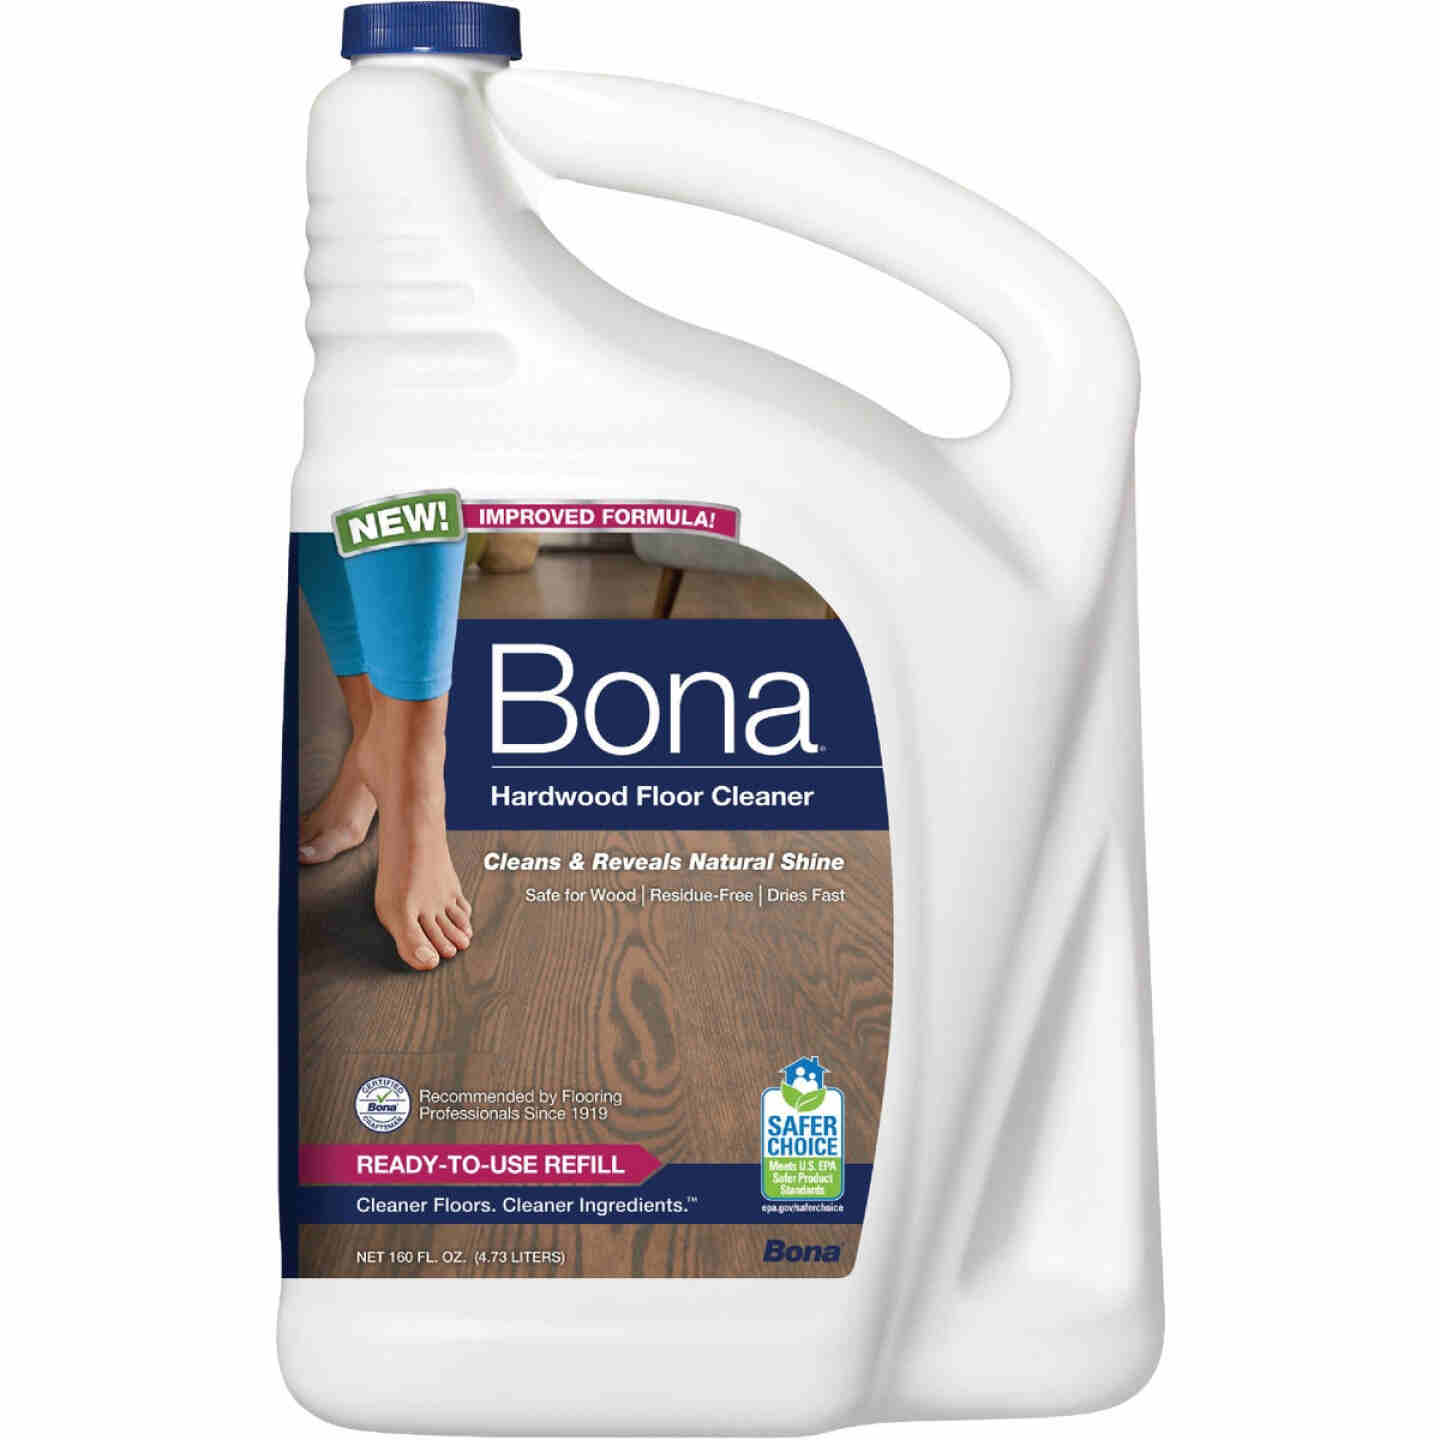 Bona 160 Oz. Hardwood Floor Cleaner Image 1